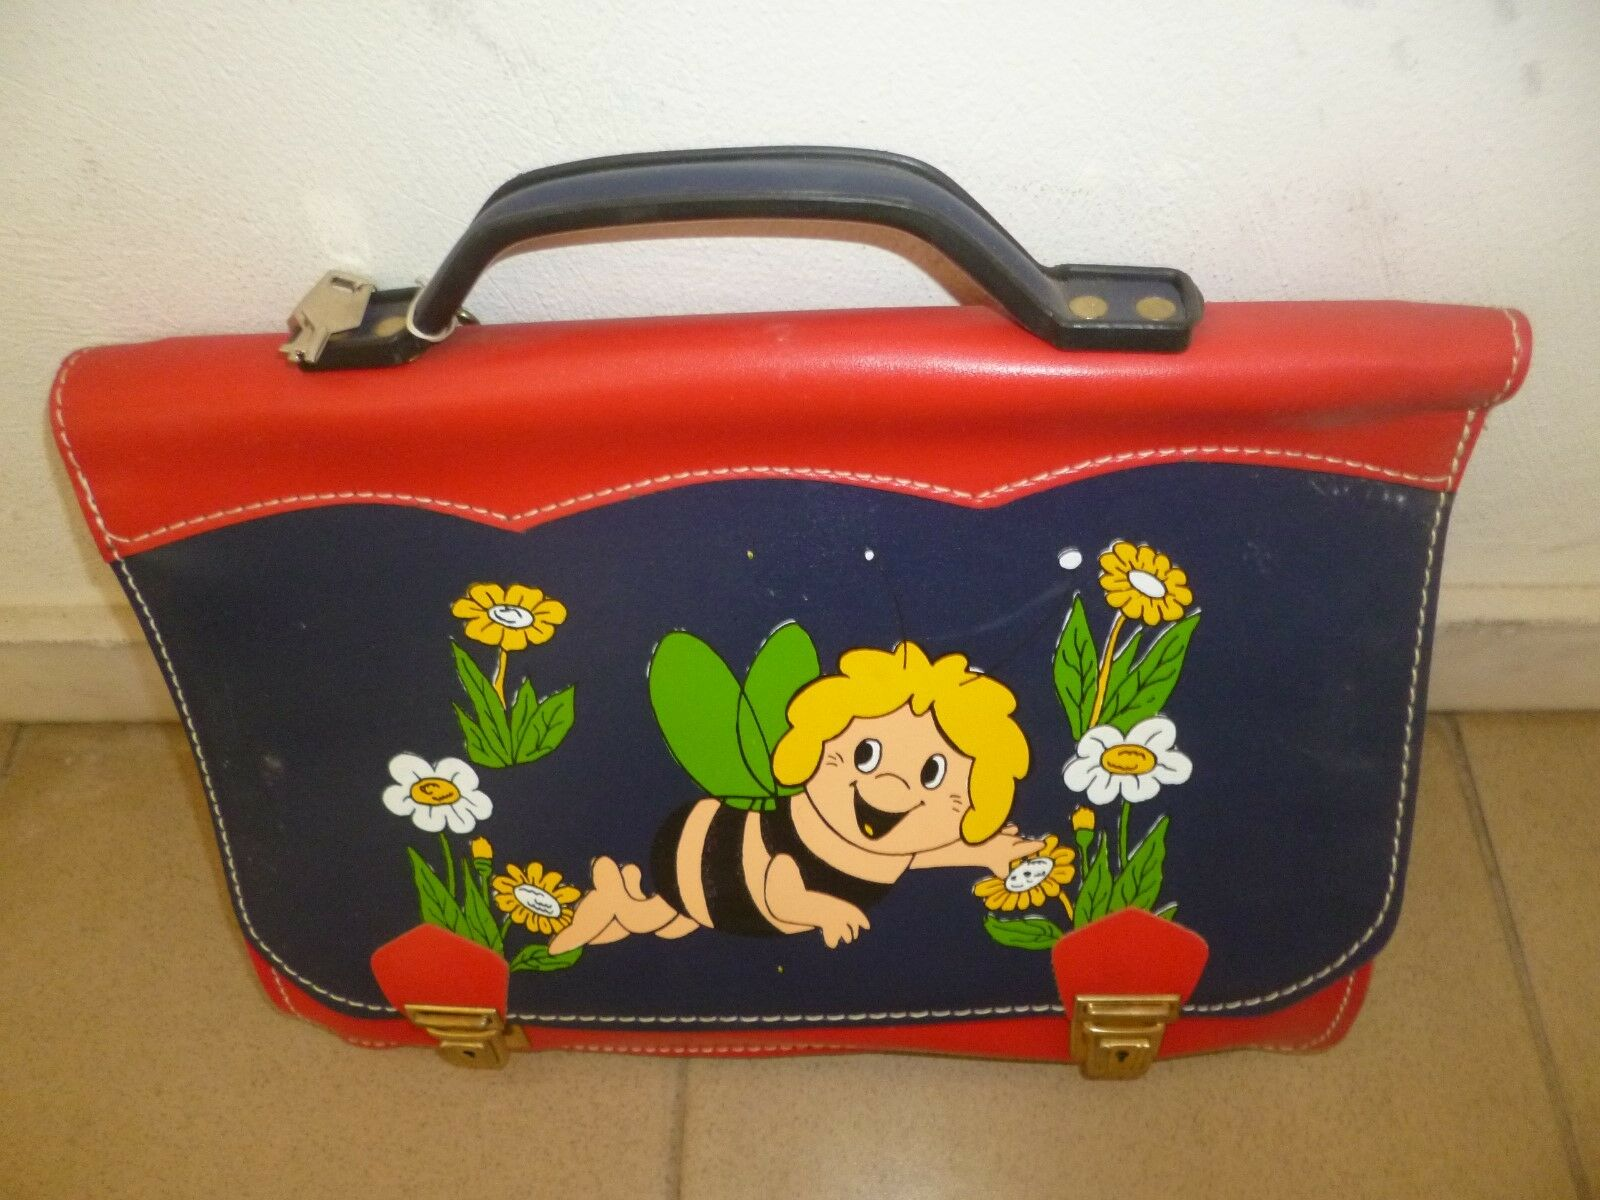 UNIQUE VINTAGE GREEK THE - MAYA THE GREEK BEE - SCHOOL BAG NEW FROM 80s d74dd5